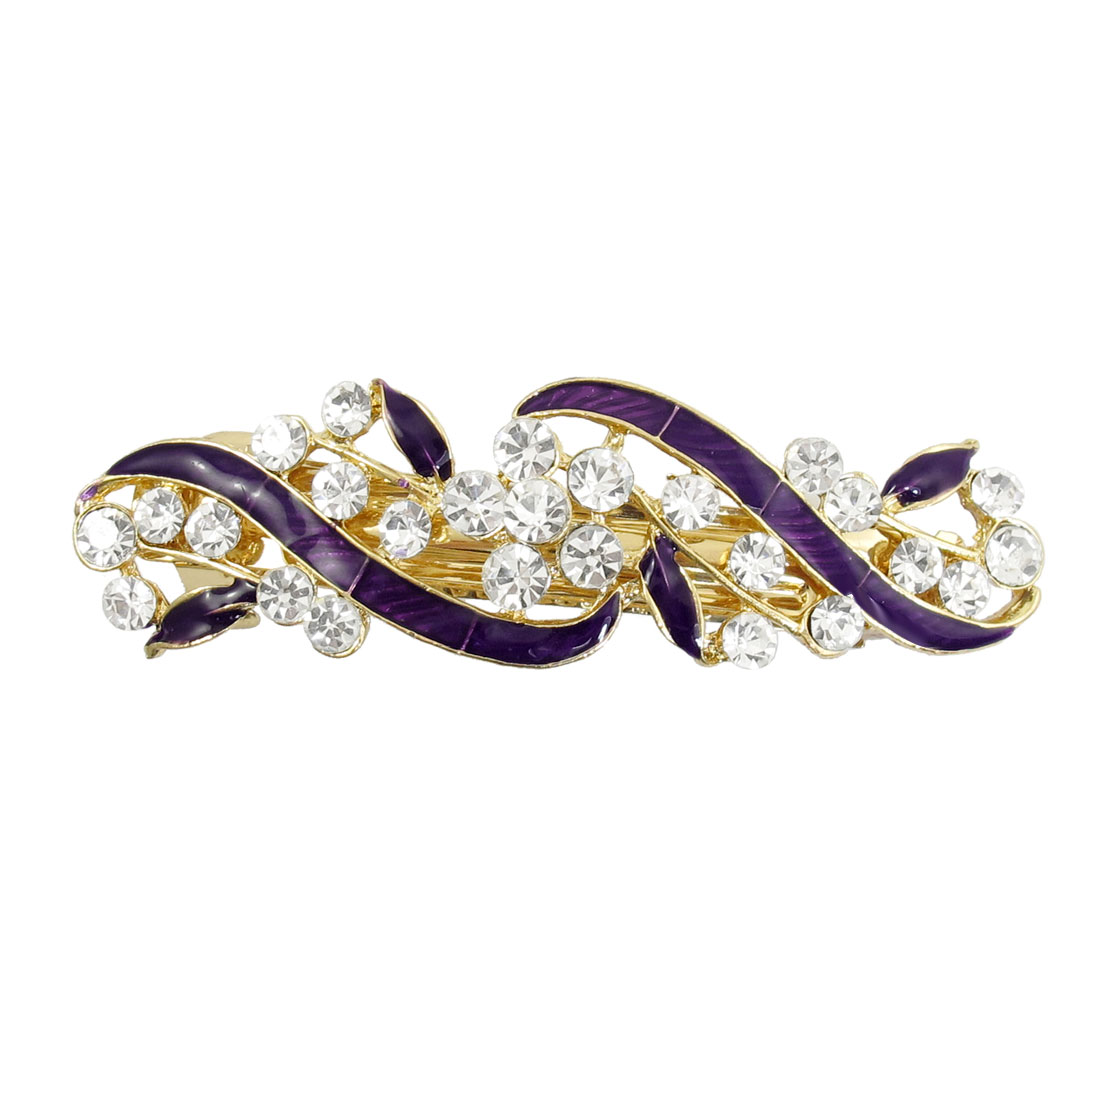 Gold Tone Metal French Clip Faux Crystal Inlaid Purple Hairclip Barrette